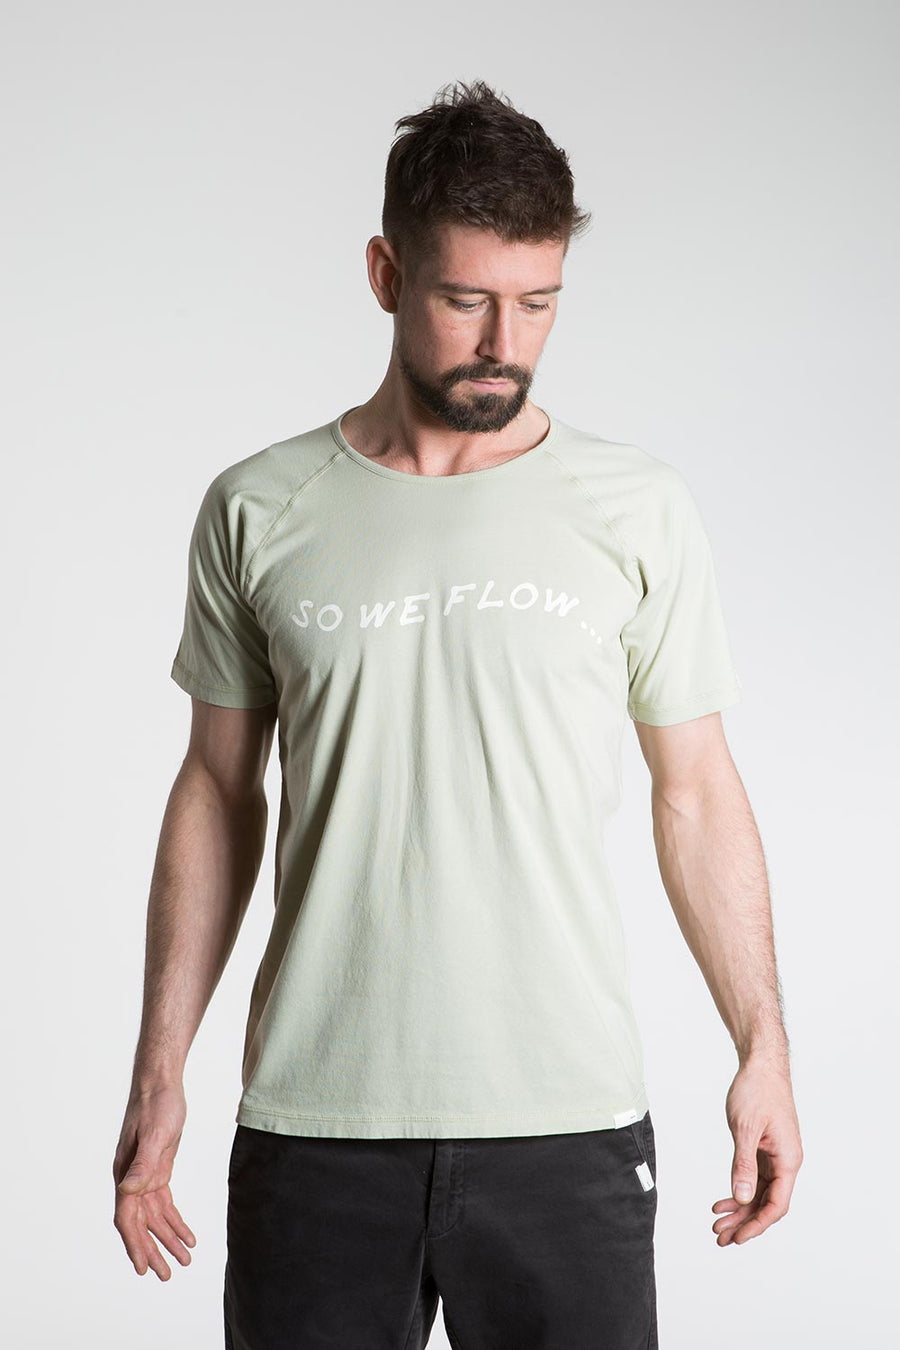 so we flow... 'so we flow...' tee - alfalfa - front